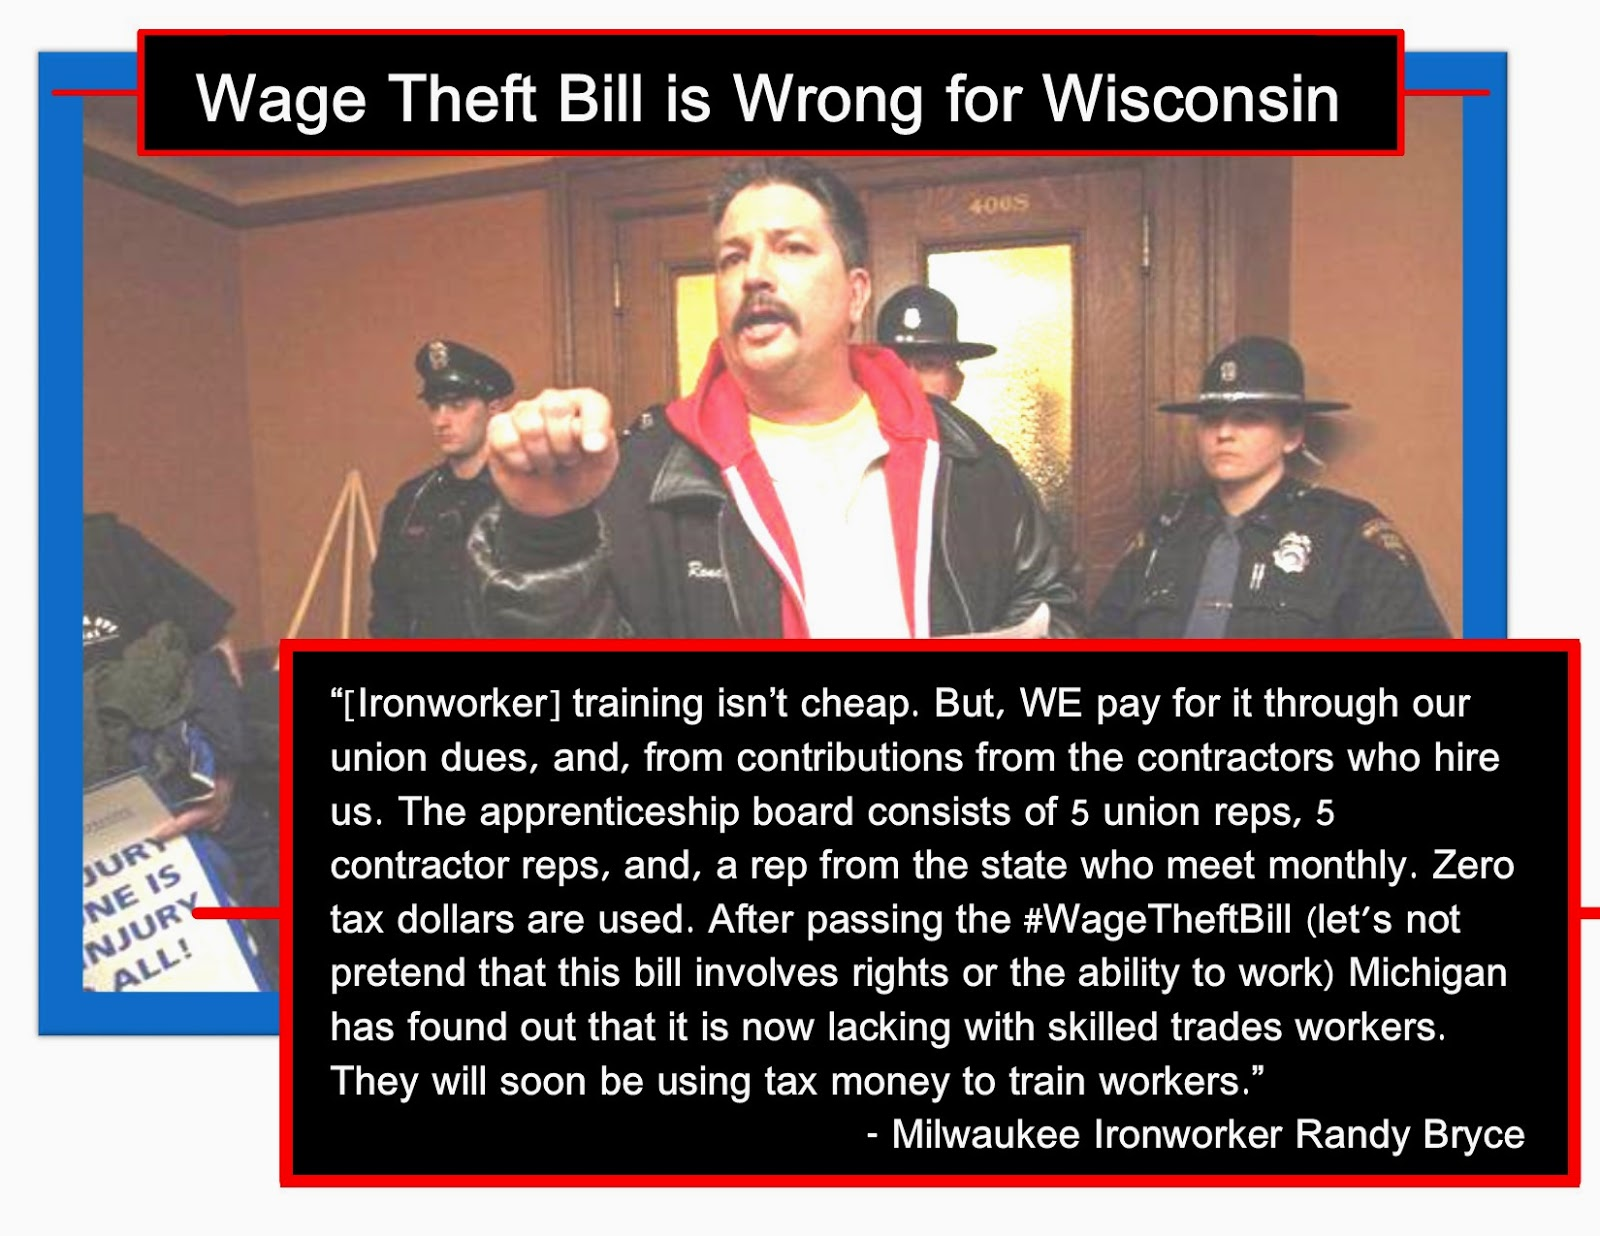 Monologues of Dissent: Ironworker: Wage Theft Bill will cost